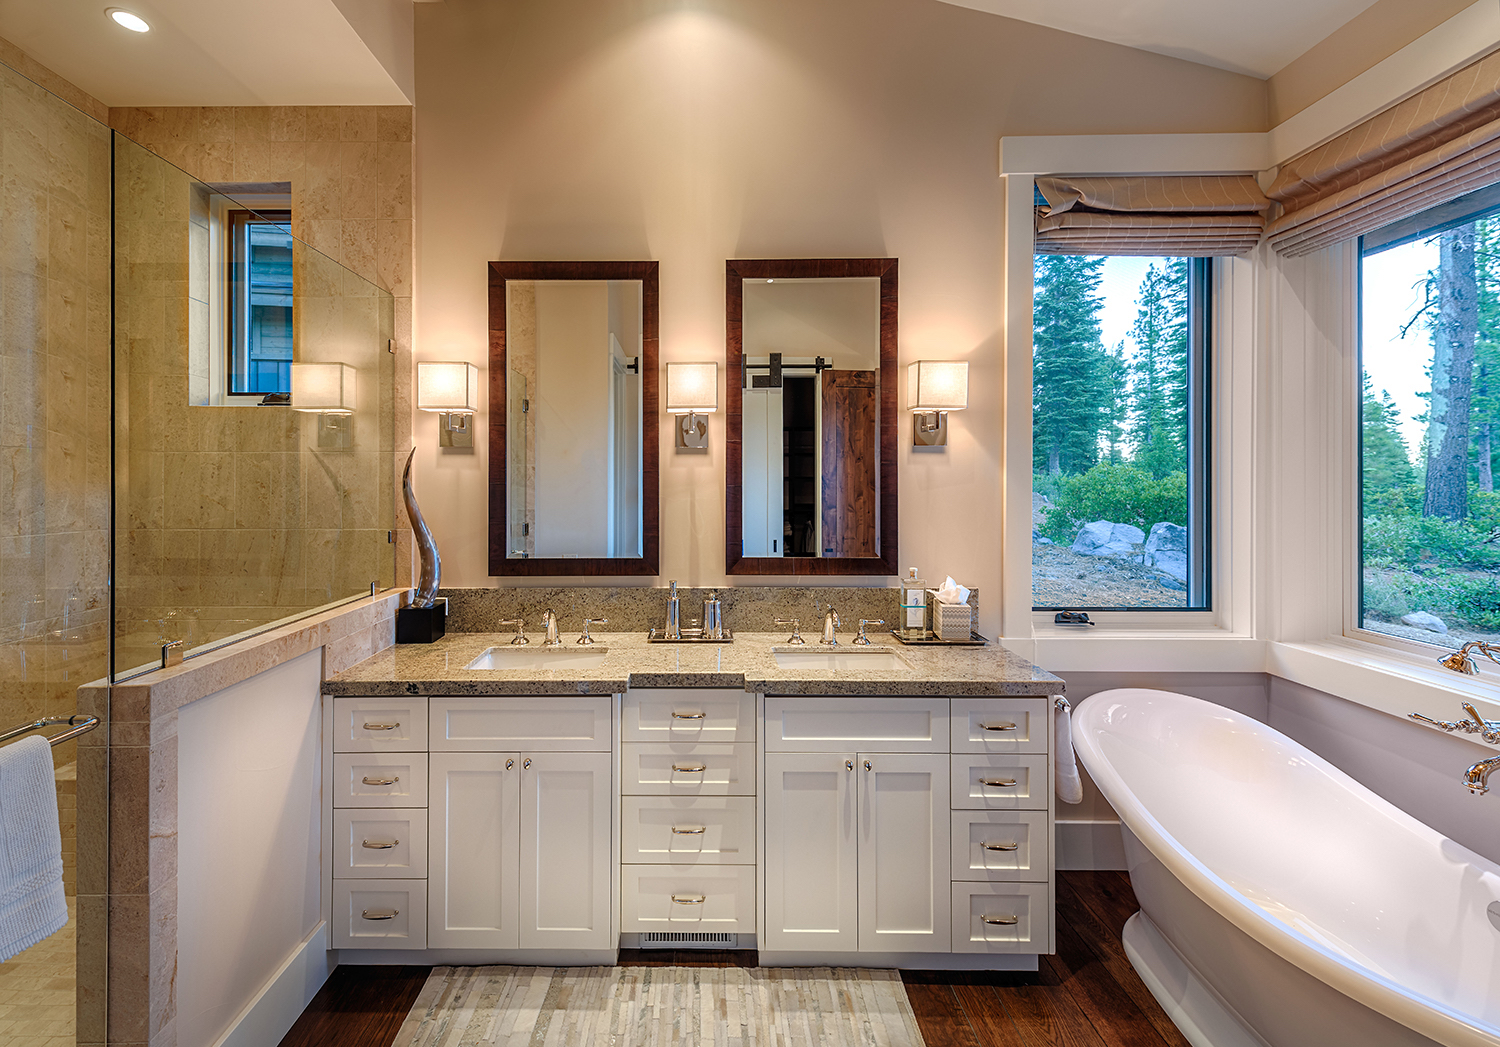 Lot 291_Master Bath_Shower Enclosure_Freestanding tub_Cabinetry.jpg